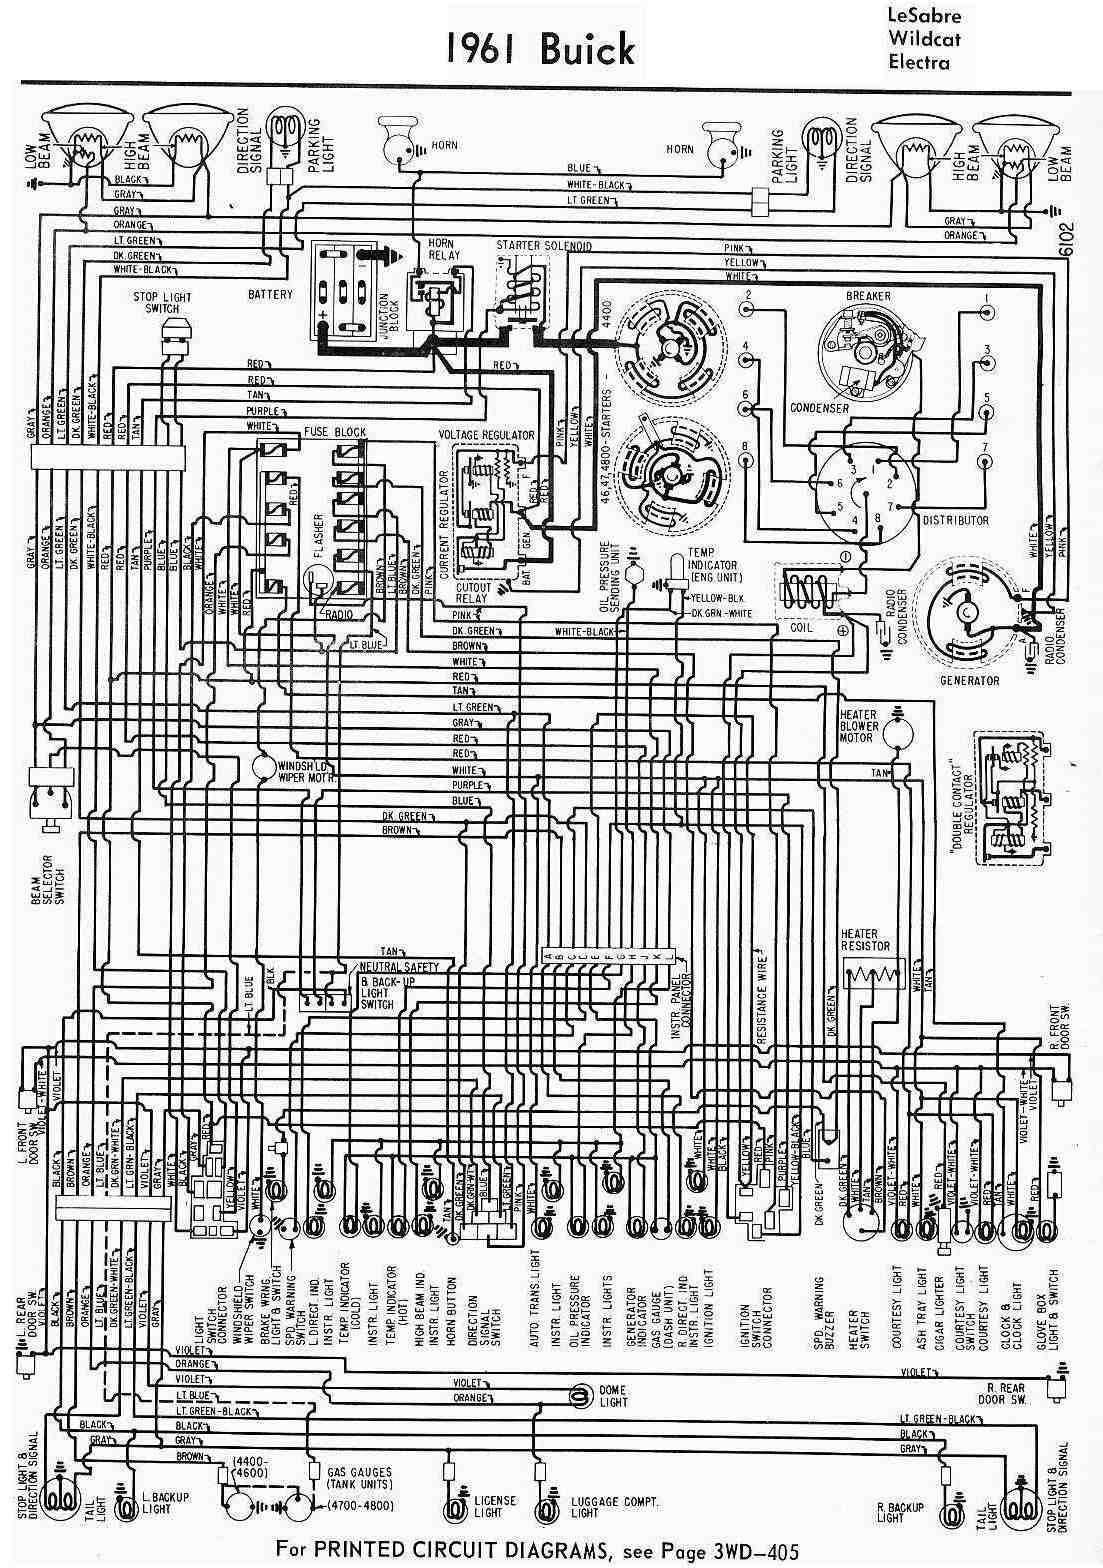 Indicator Buzzer Wiring Diagram Electrical Piezo Circuit 2011 All About Diagrams Train Horn